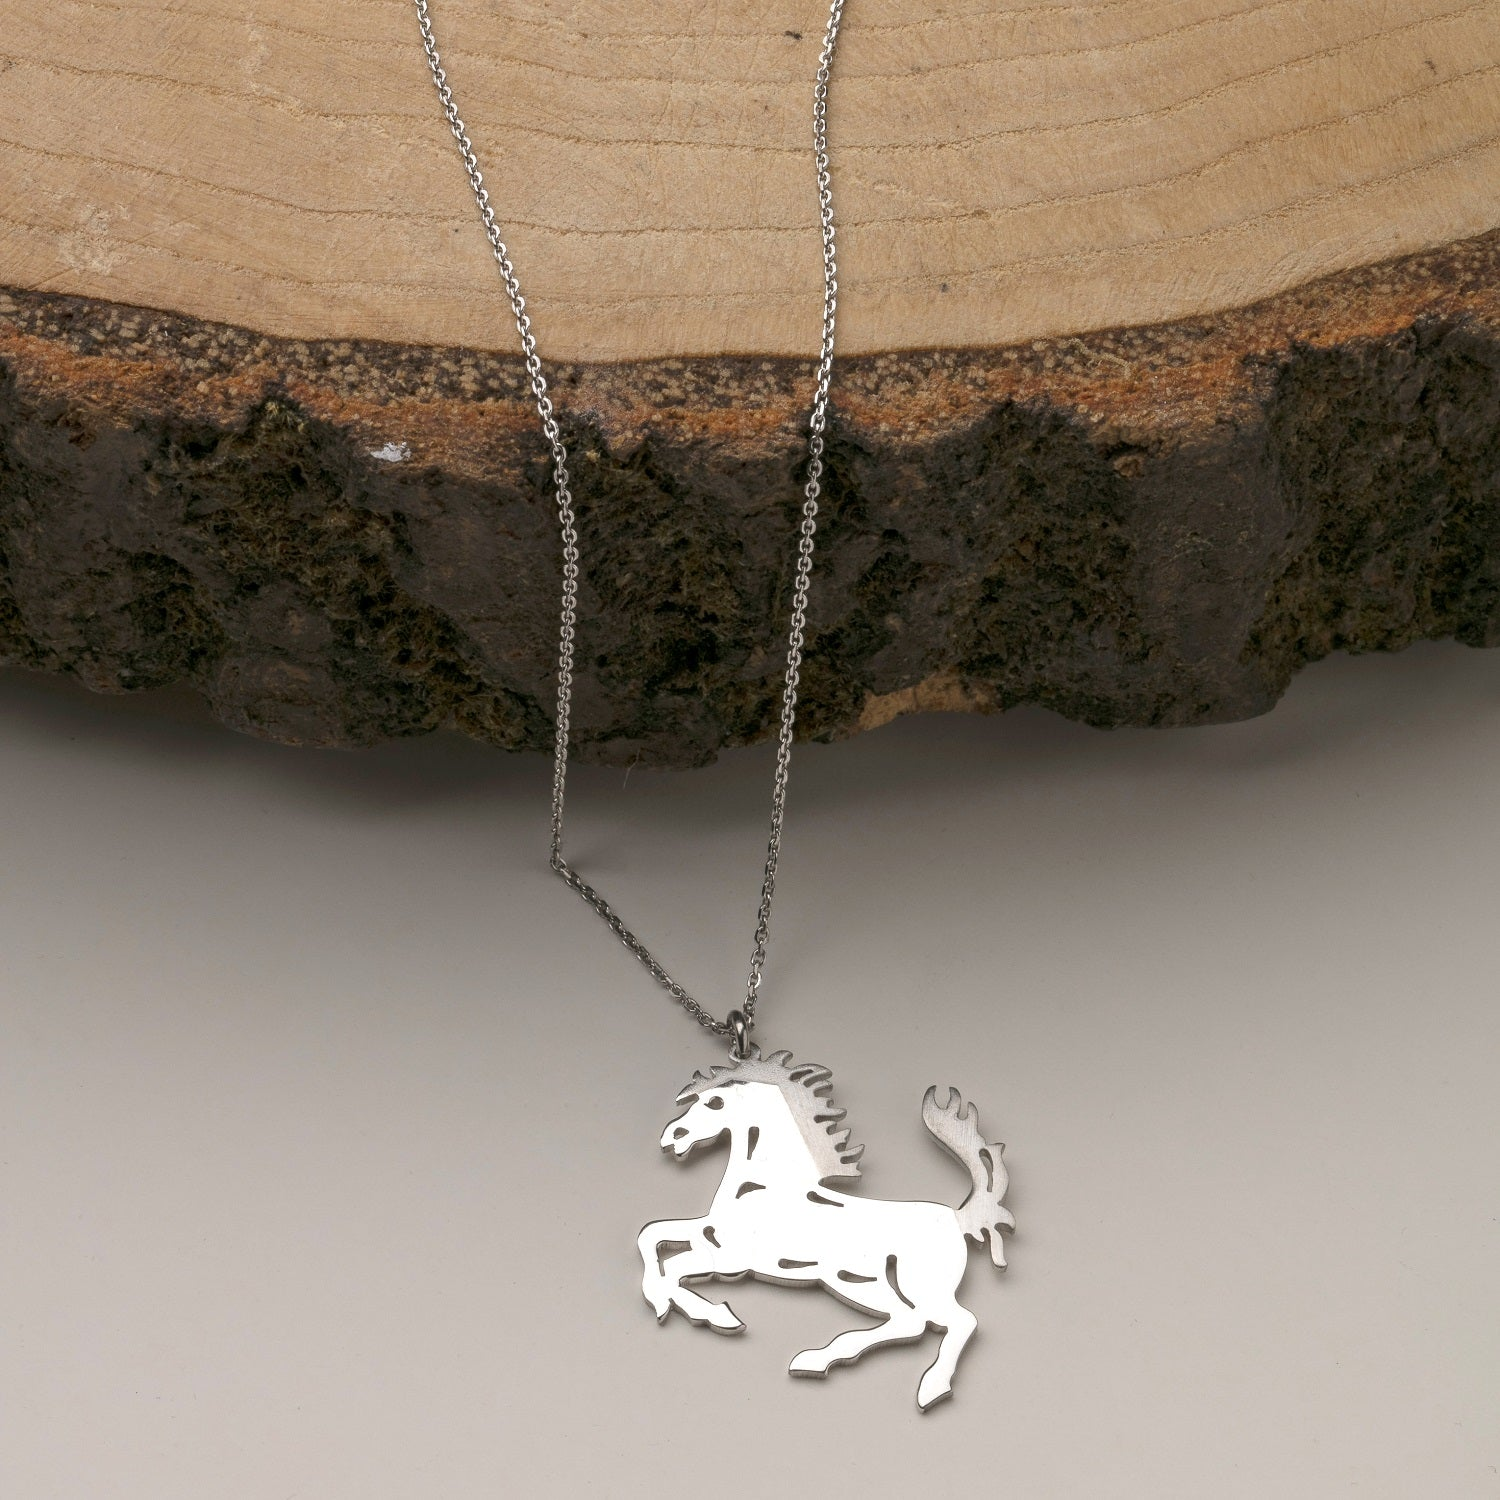 Sterling Silver Horse-Horse Jewelry-Equestrian Jewelry-Gift for Horse Lover-Cowgirl Necklace-Cowboy Jewelry